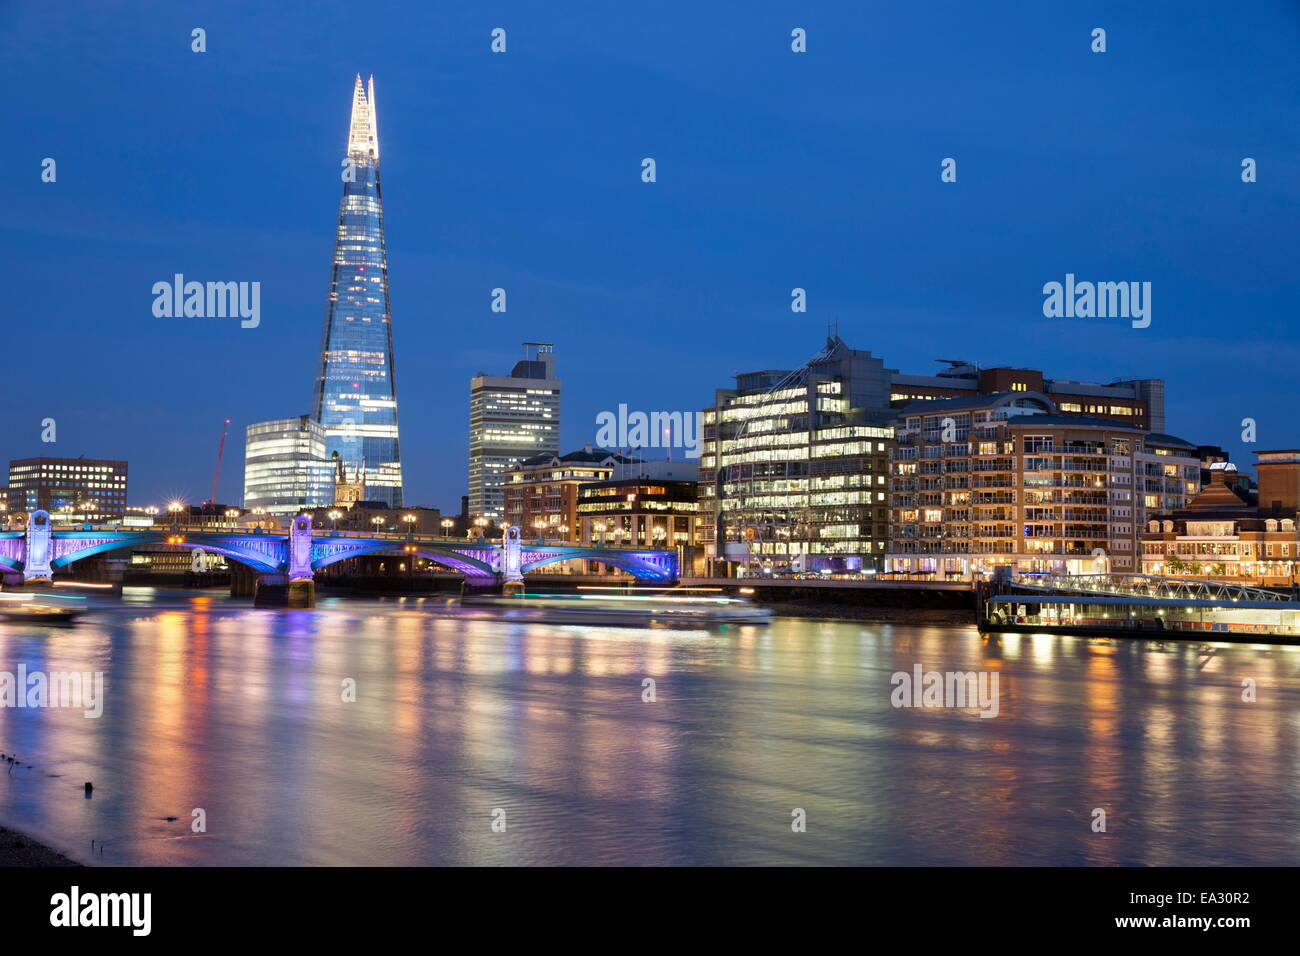 View over the River Thames with The Shard, London, England, United Kingdom, Europe - Stock Image